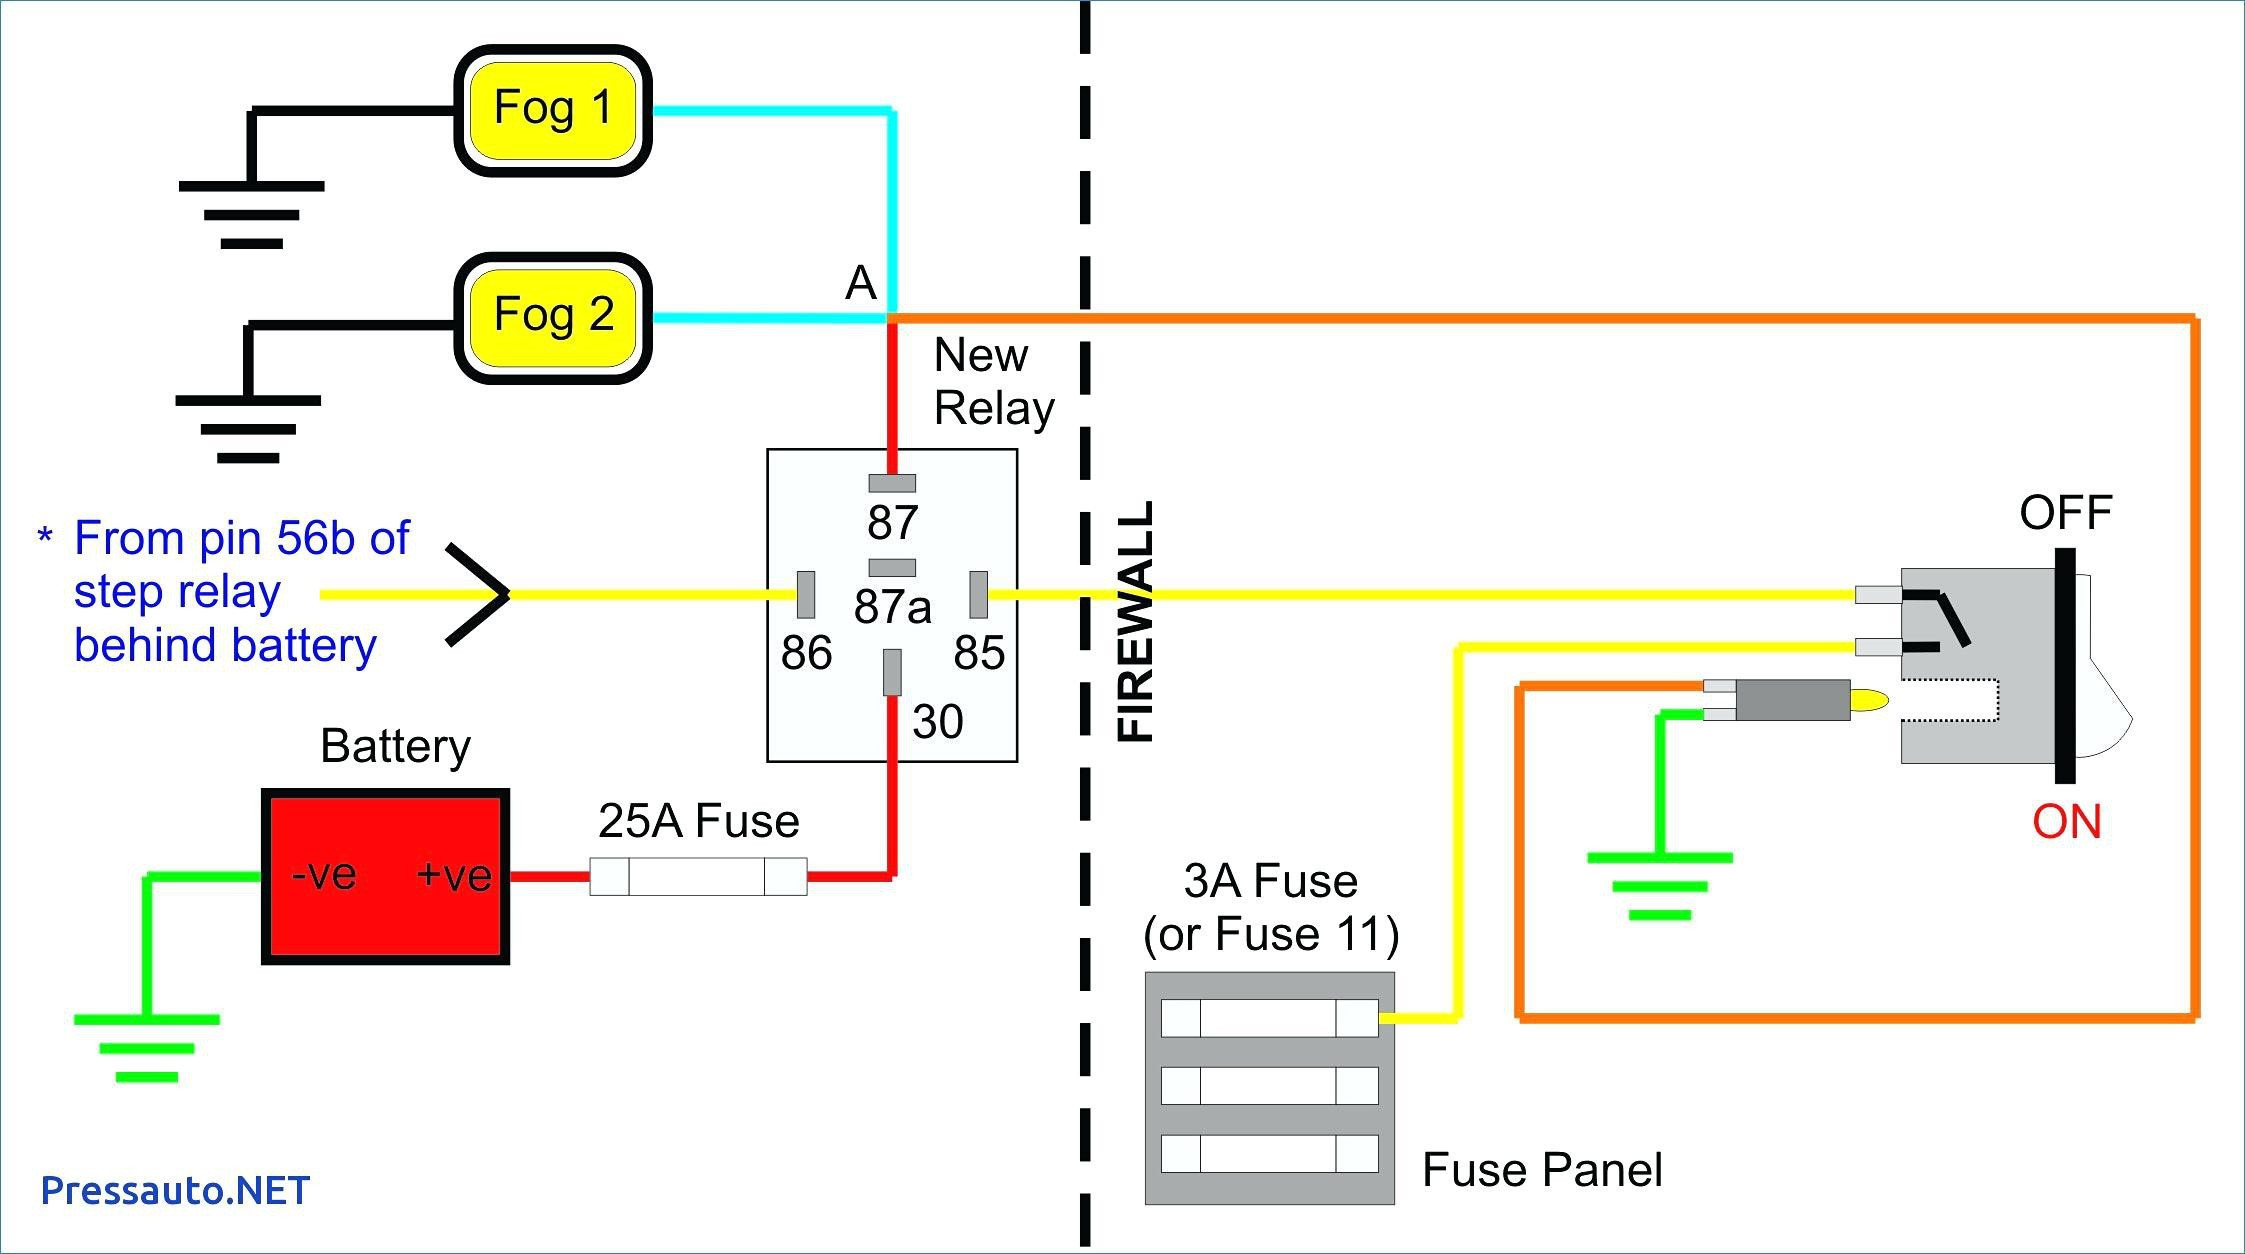 Wiring Diagram For A Relay For Fog Lights Valid Fog Light Wiring Diagram With Relay Awesome Wiring Diagram 18 Light